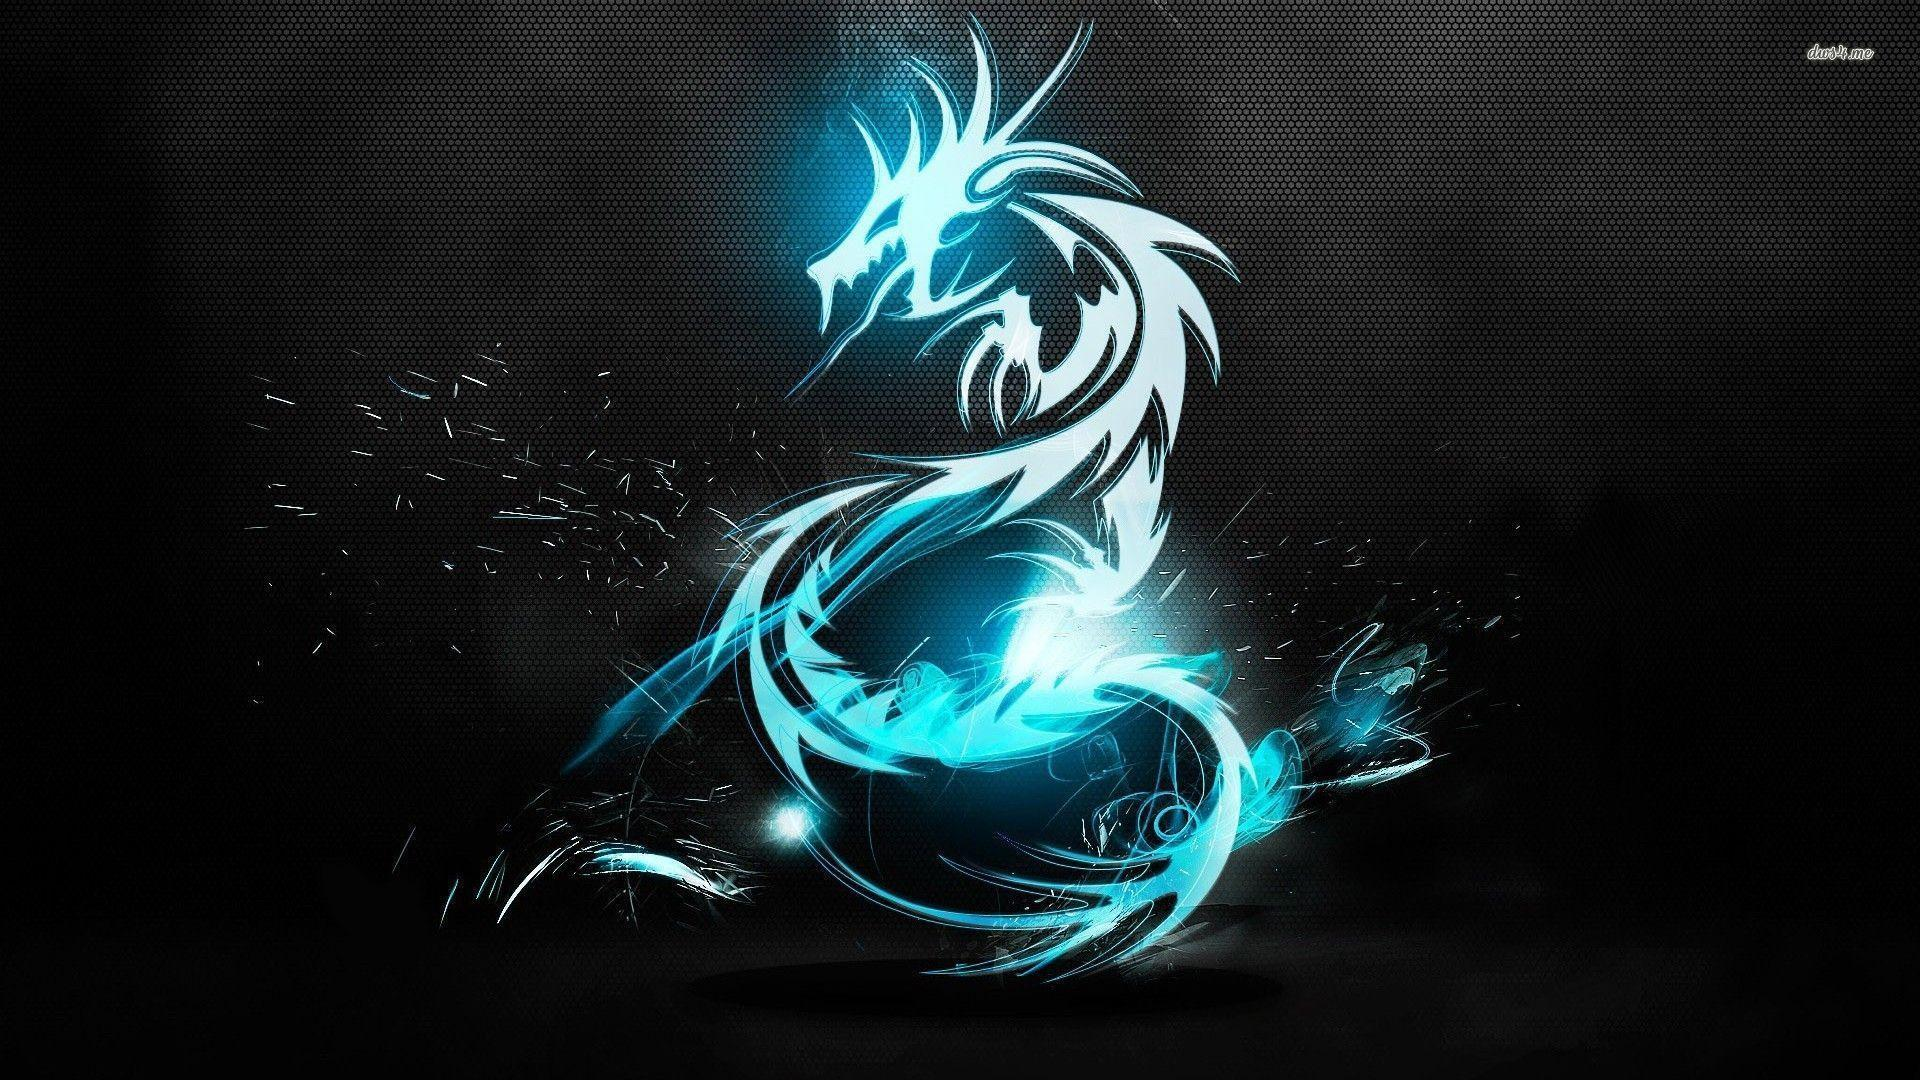 dragon wallpaper widescreen high resolution - photo #34